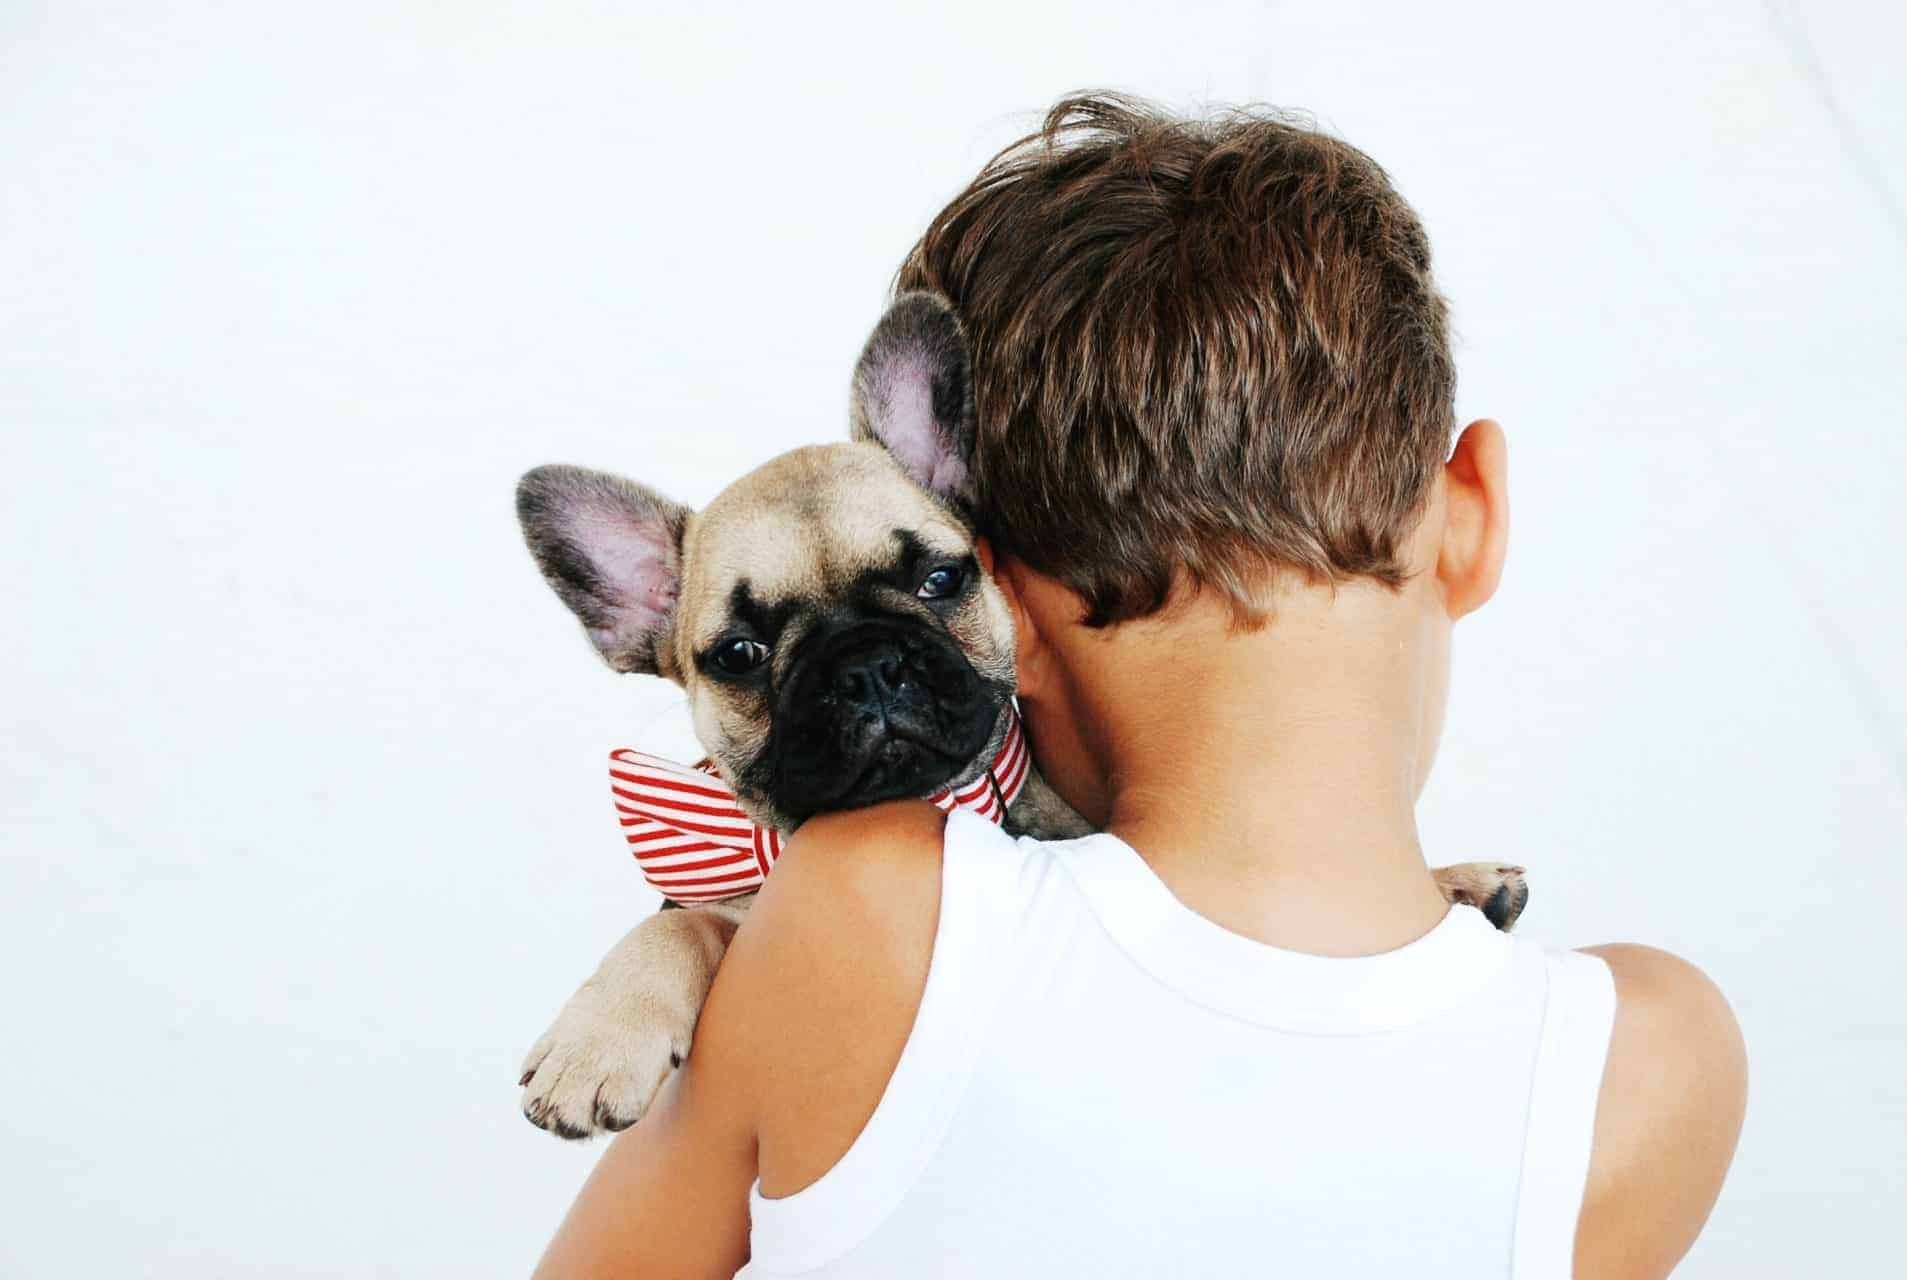 A child with short hair faces away from the camera in a white tank top, while a french bulldog puppy in a red stripe bow tie looks at the camera over his shoulder